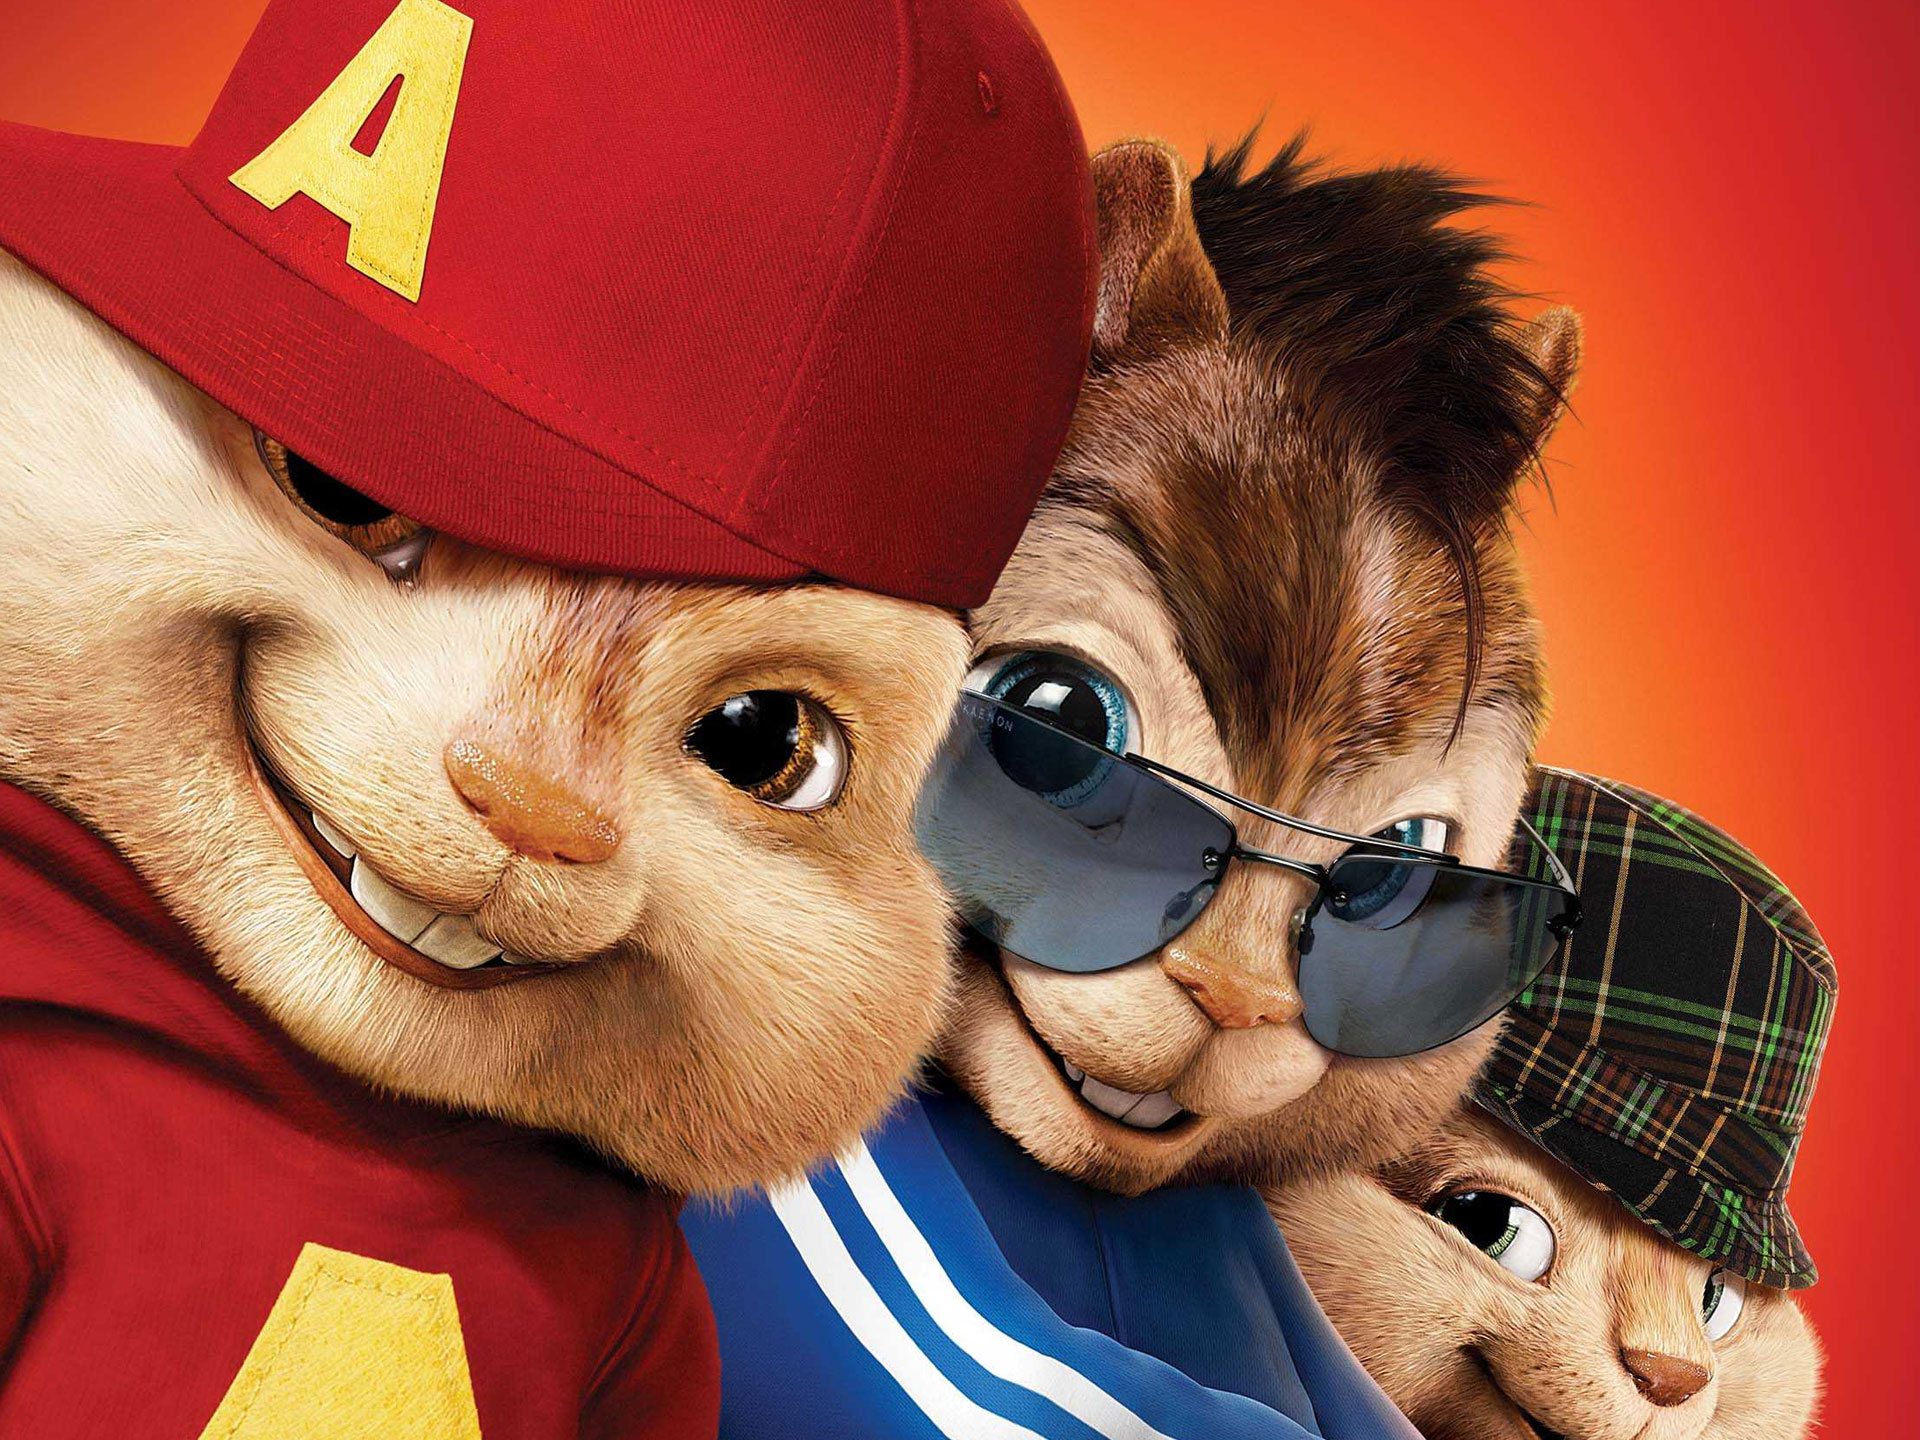 Alvin and the Chipmunks Squeakquel Poster 1632.52 Kb